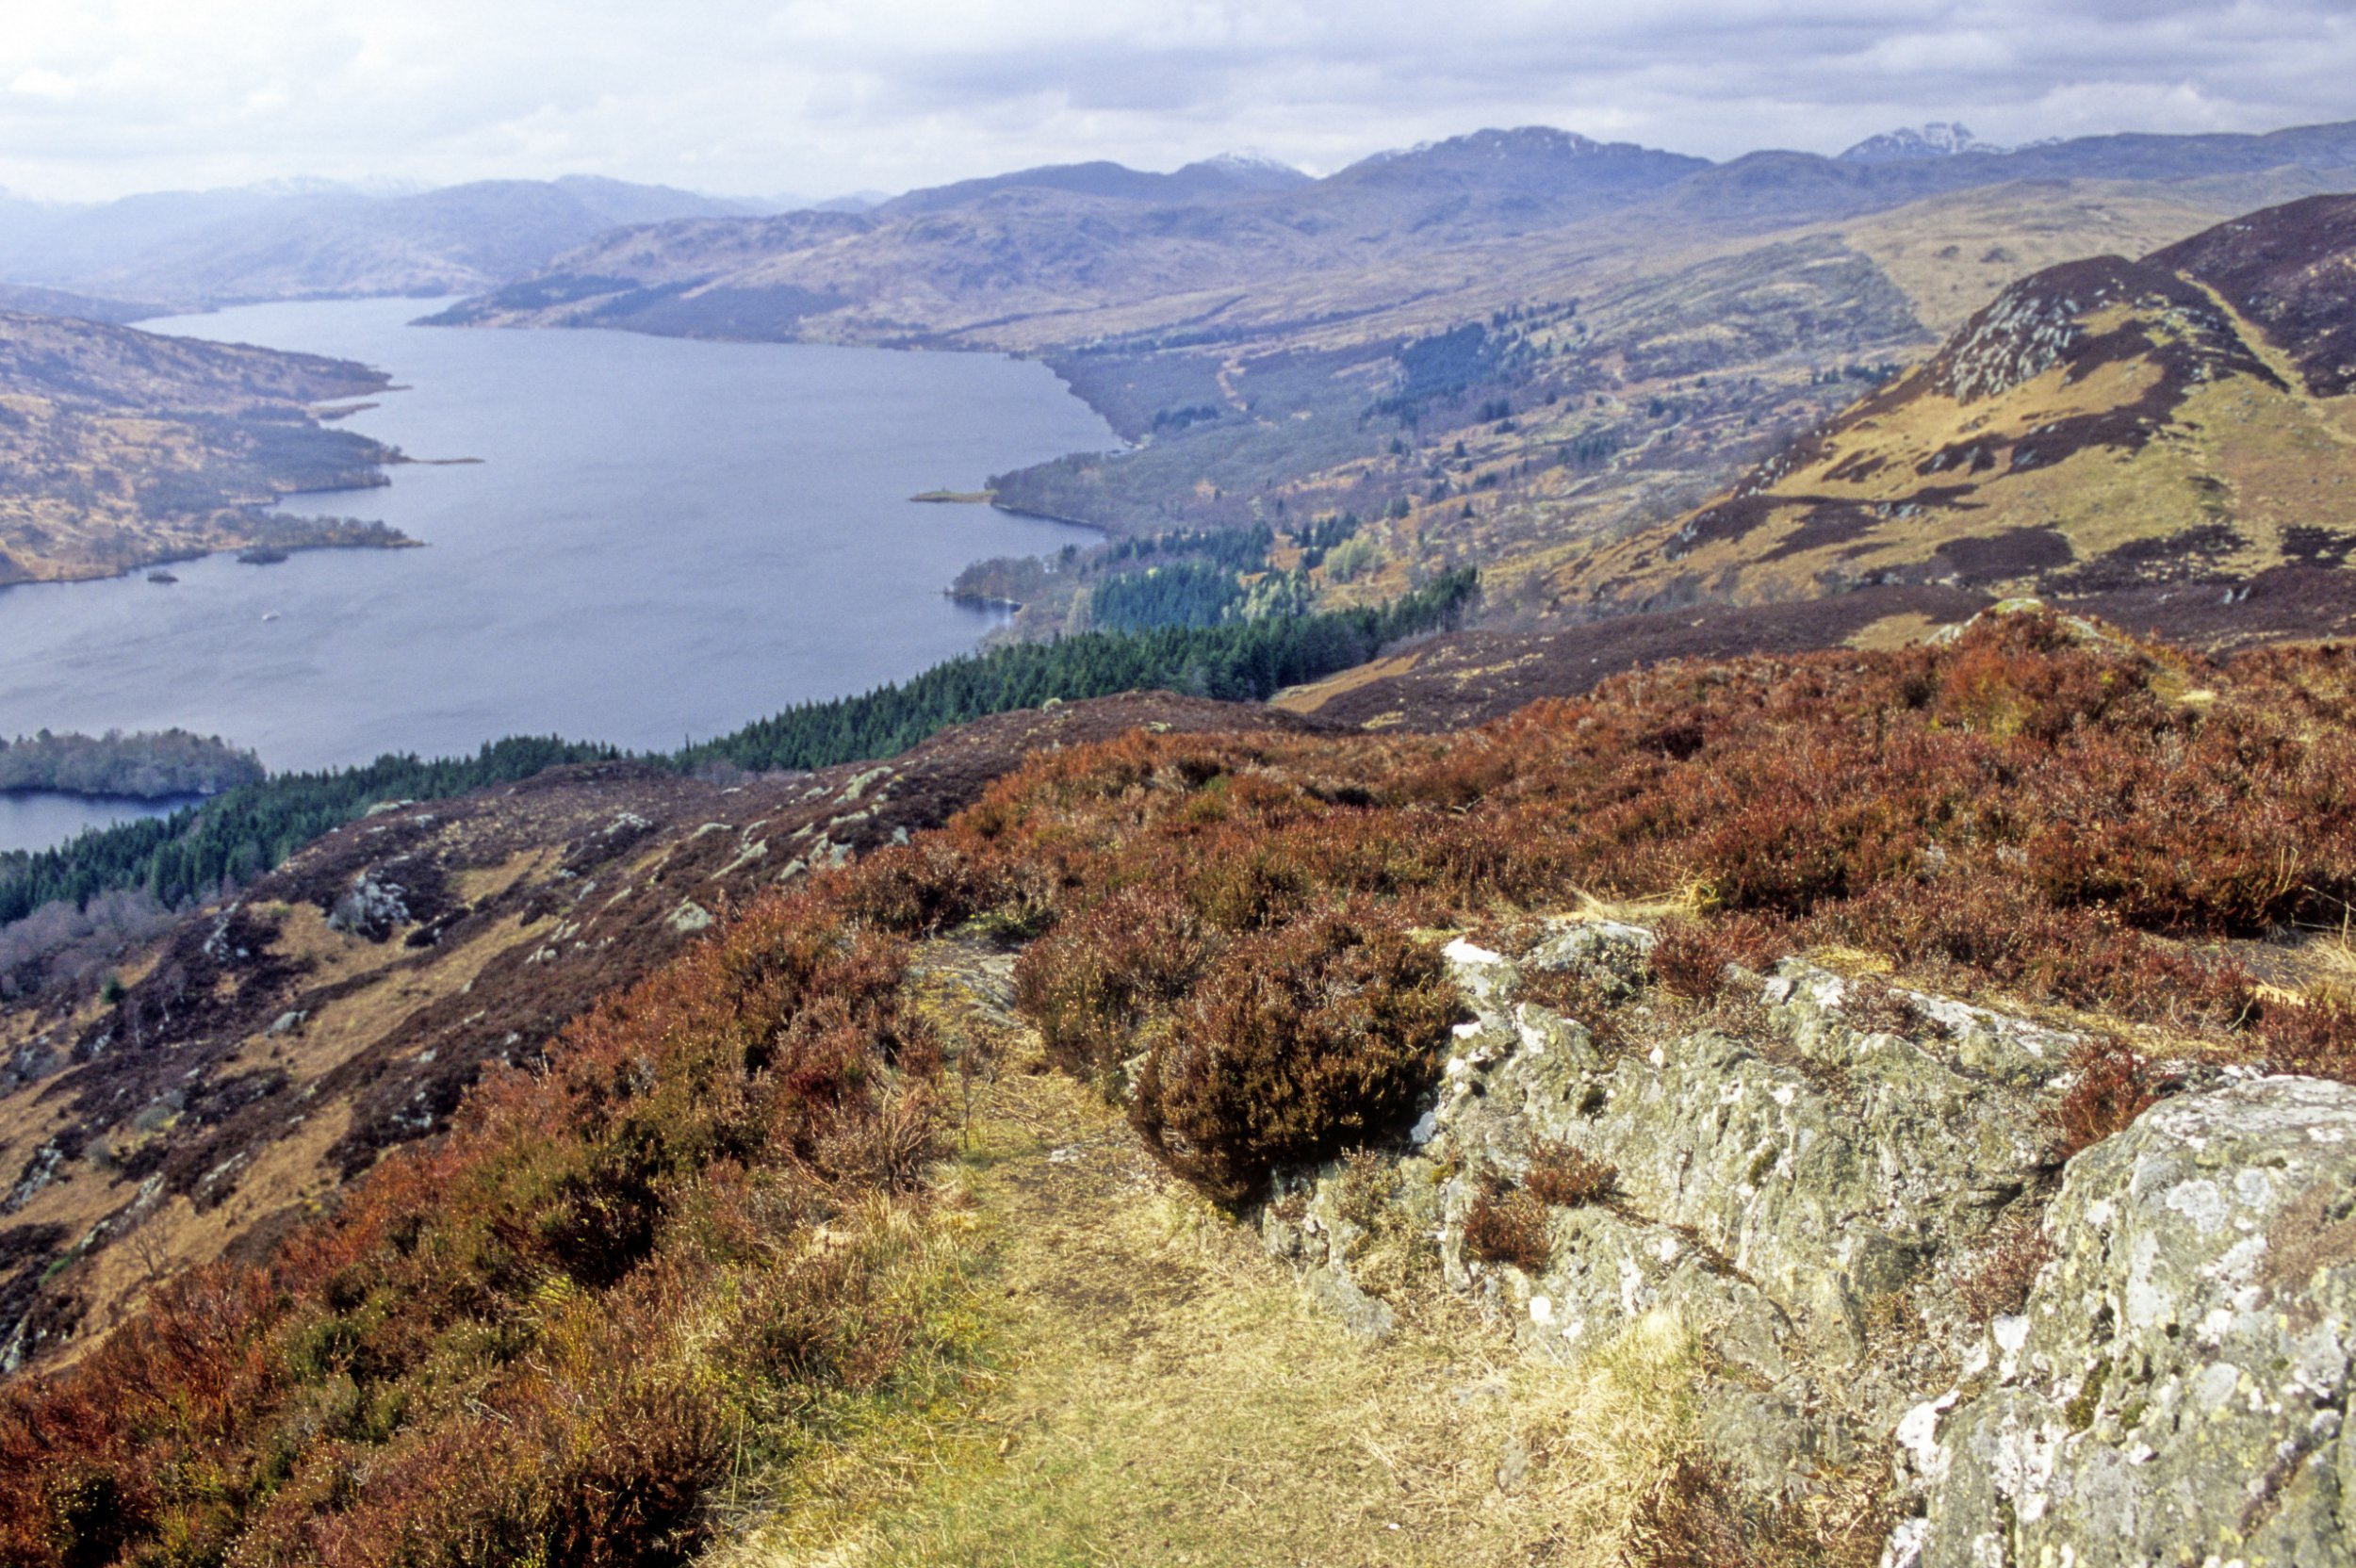 A gorgeous view of Loch Lomond in the Scottish Highlands